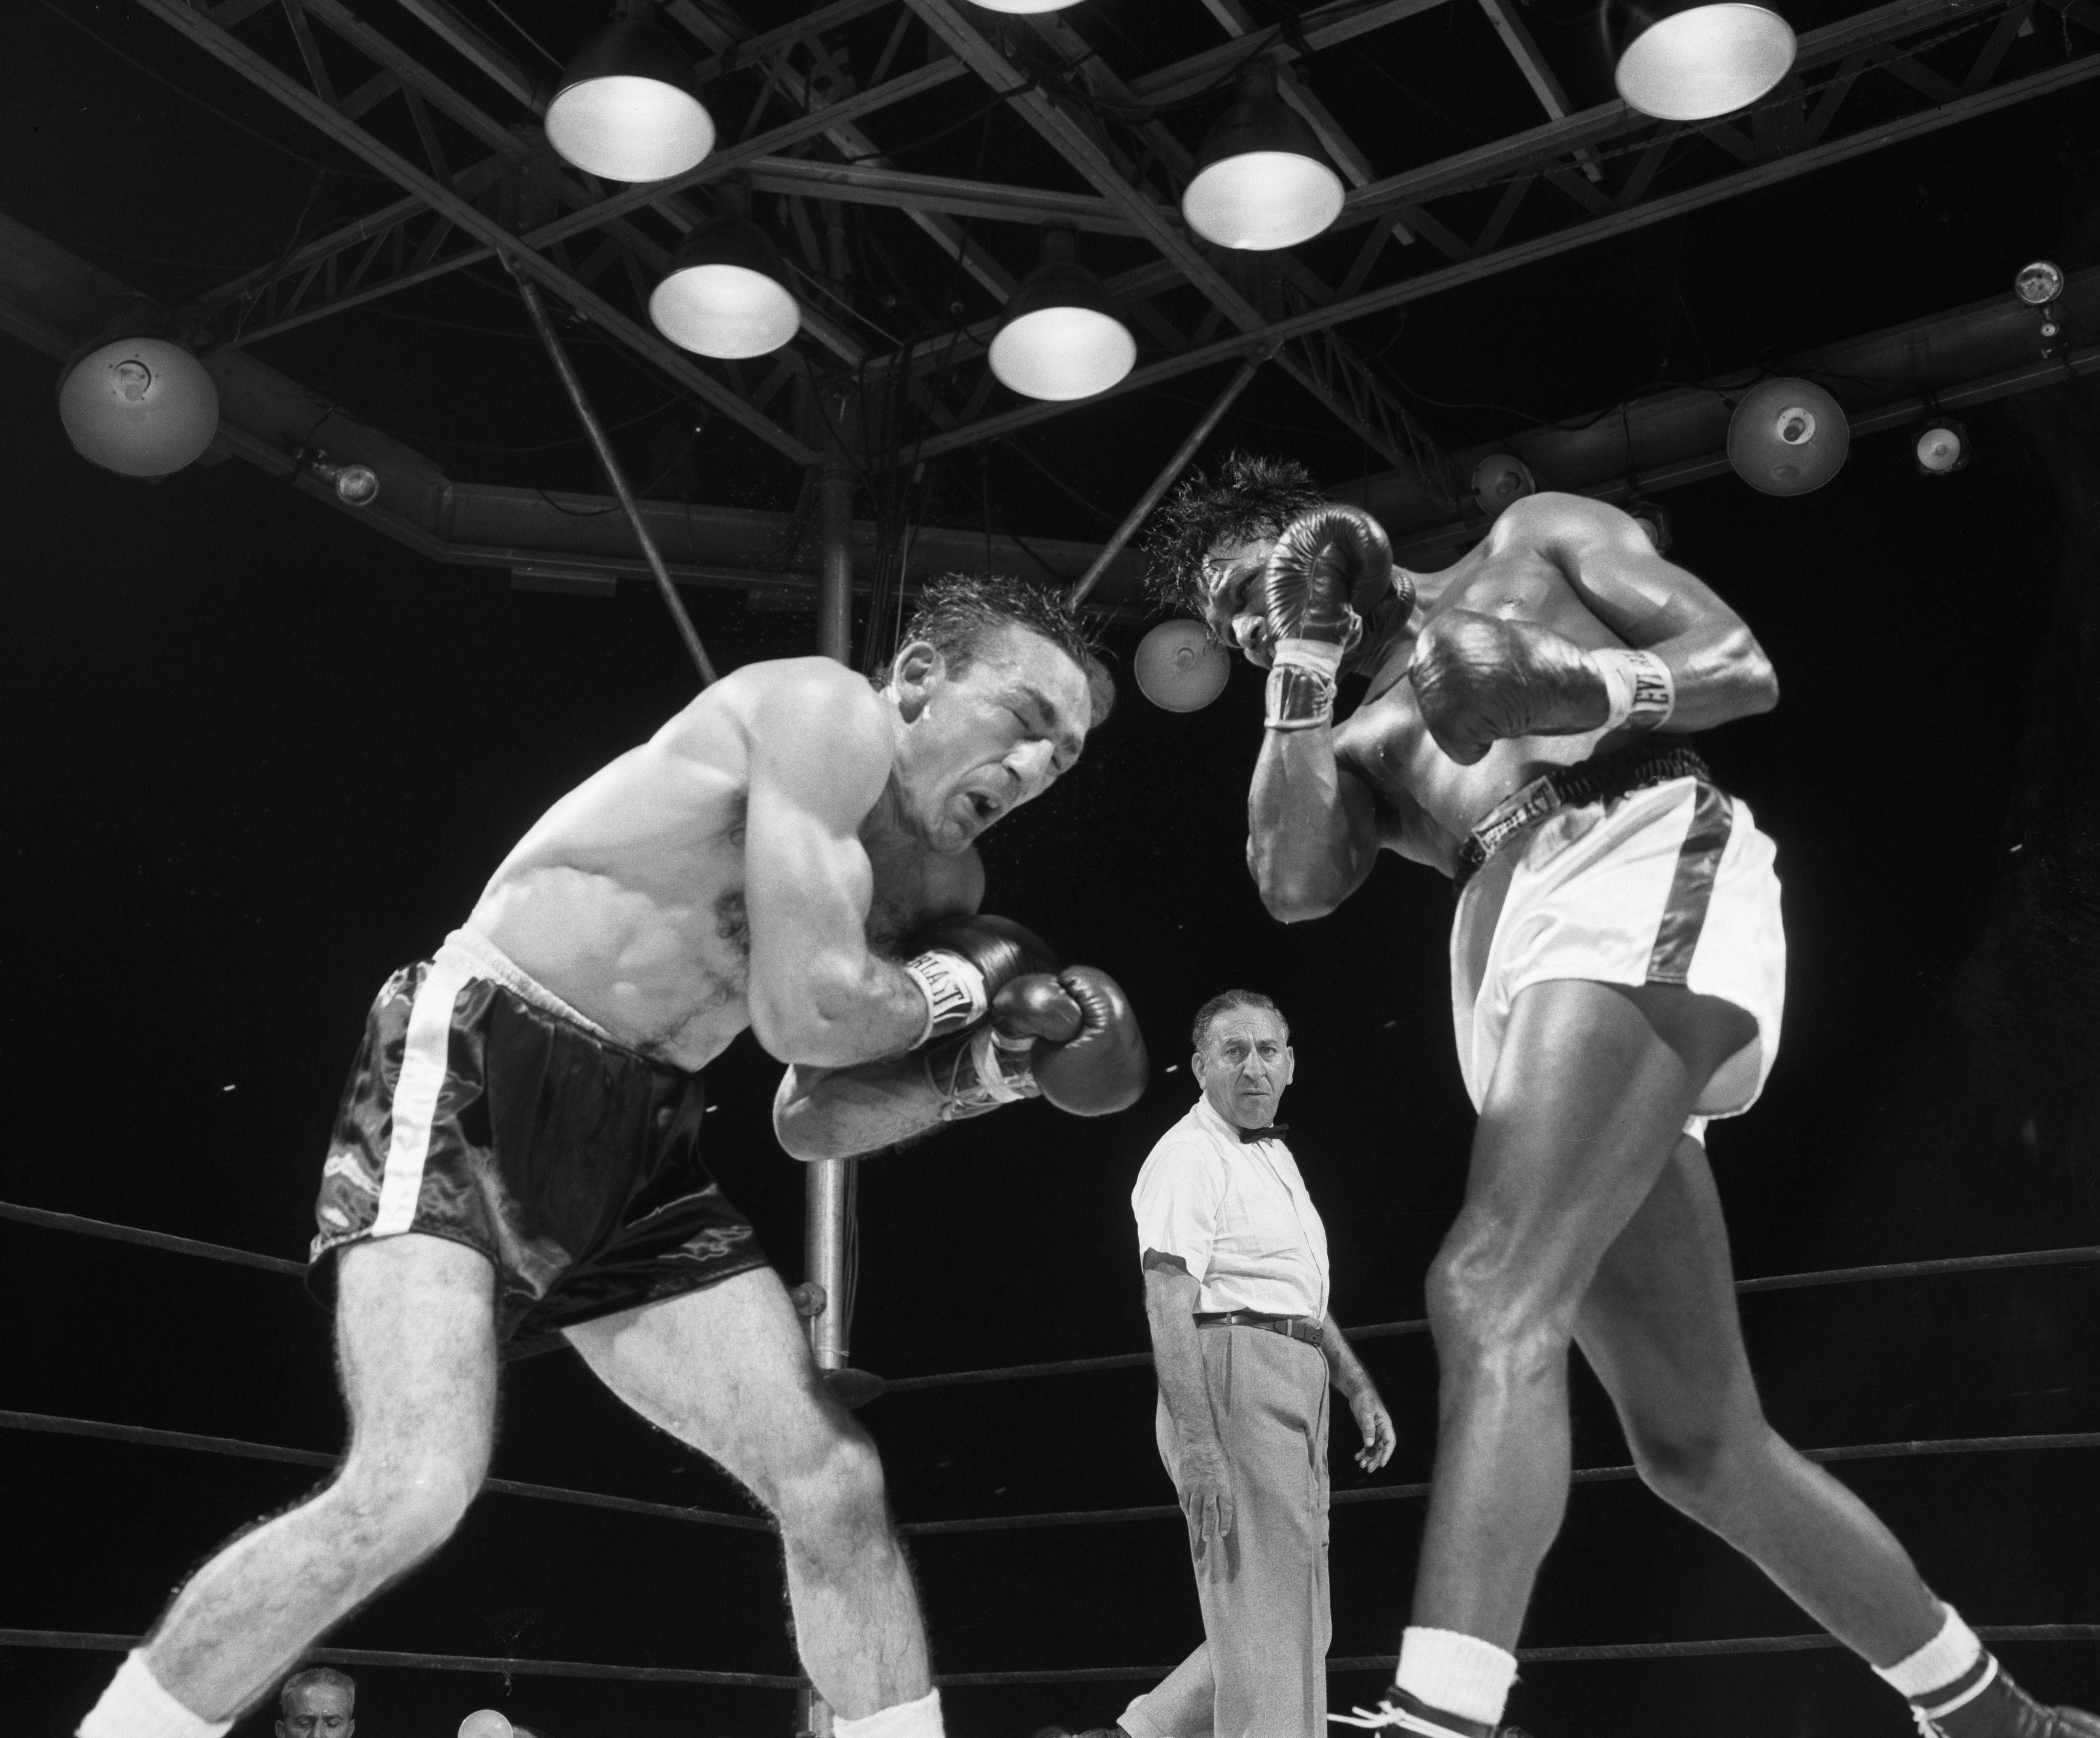 Vintage images - September 23, 1957, Sugar Ray Robinson | The Day I ...